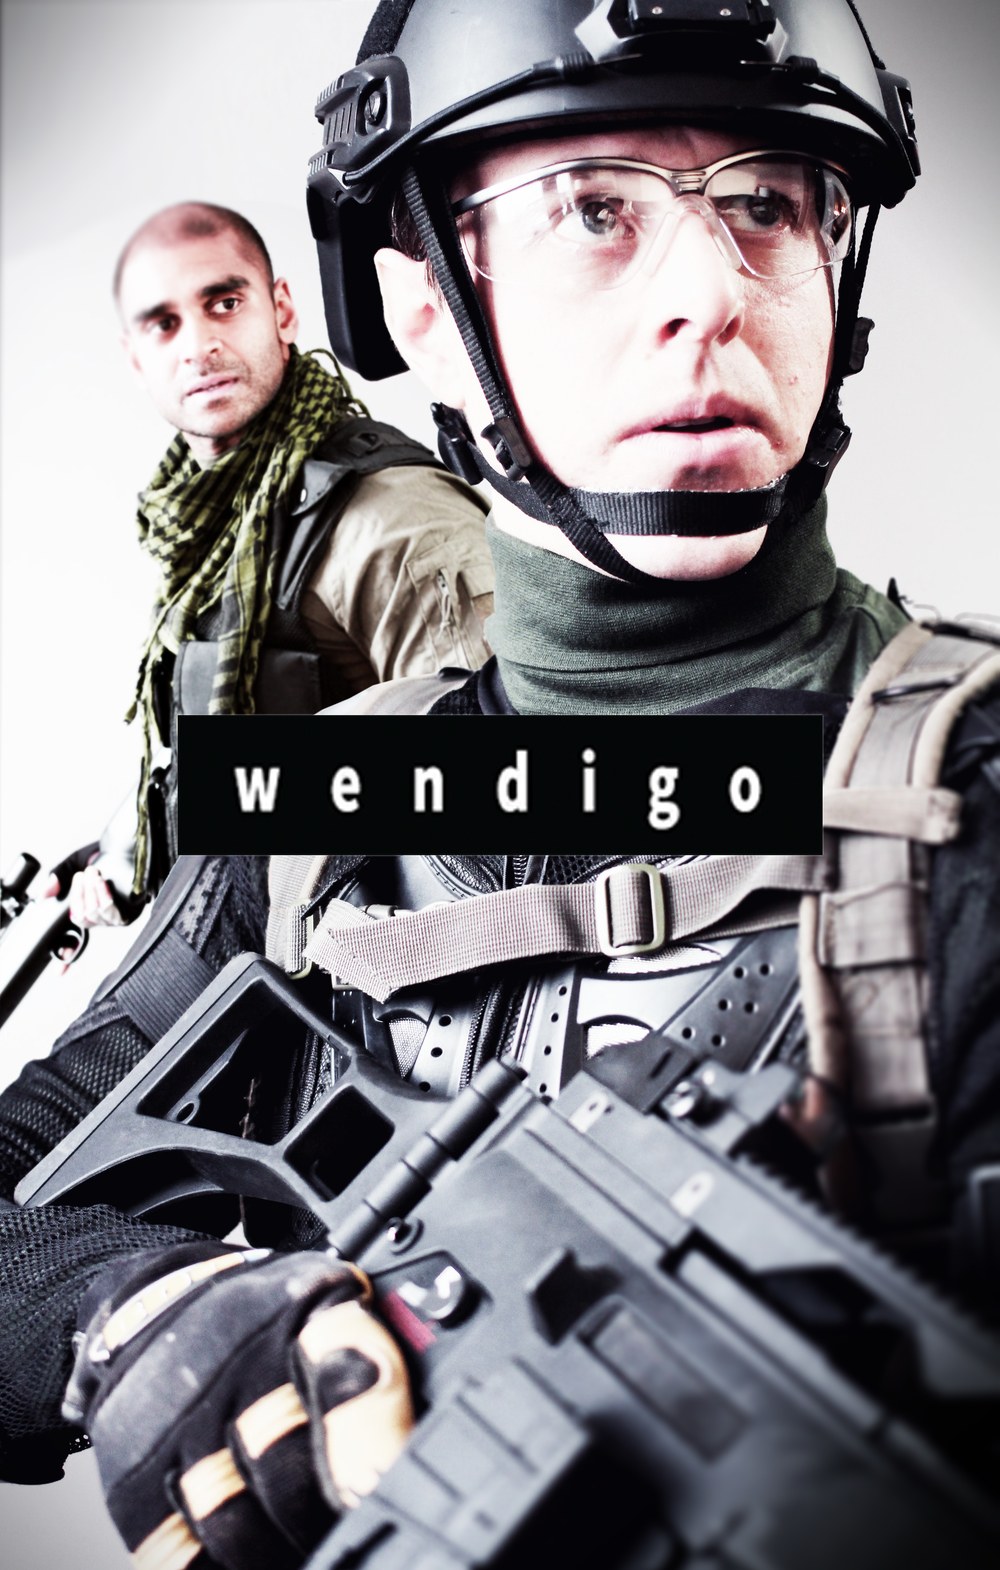 WENDIGO  Its our newest and most exciting project yet!  In association with Gopher It Productions and with Phoenix Aerial Media, we are pushing our limit with technology and creativity in some truly intense and complex battle scenes!  Wendigo follows six ex-PMC's, now mercenaries, on a mission to investigate and clear dangerous squatters from a facility on a recently purchased plot of land.    When they arrive, they find much more than they bargained for, and must fight to survive while uncovering the haunted and deadly history of the land and its people.